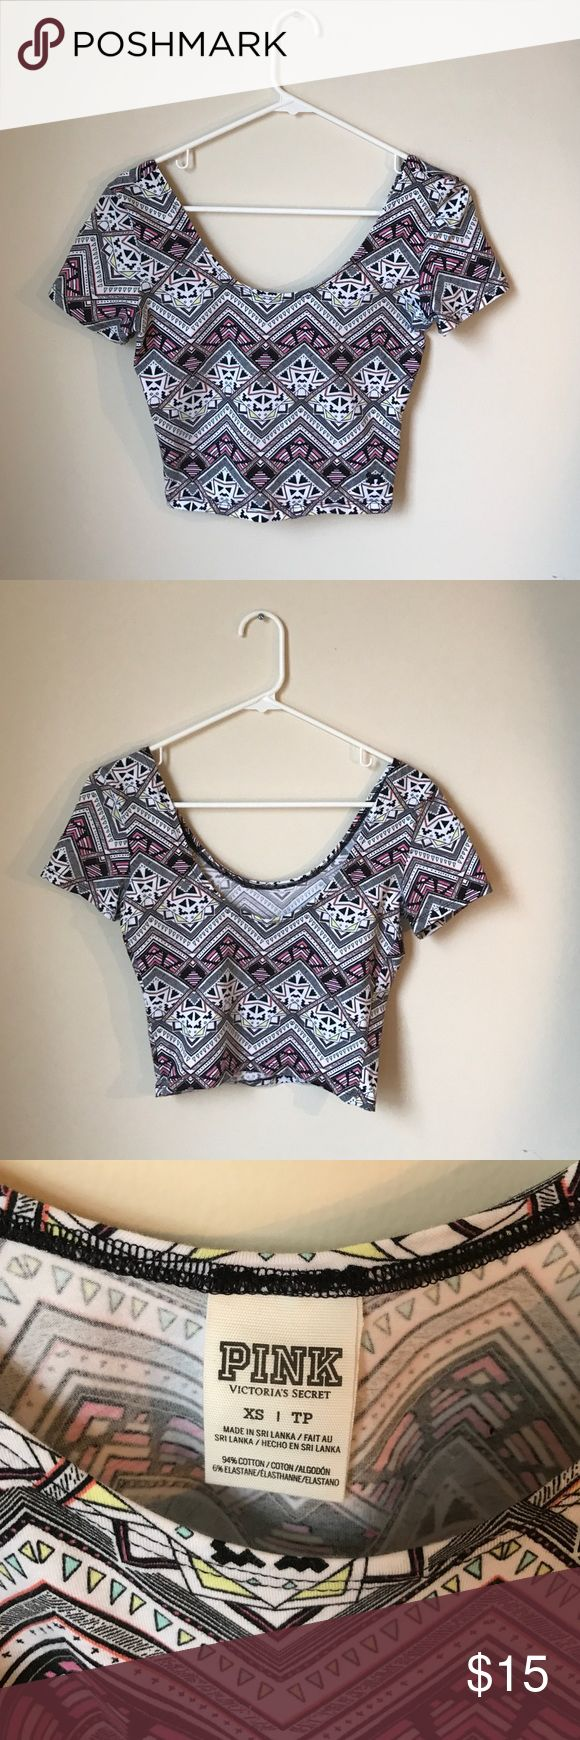 Victoria's Secret PINK Multi-colored crop top Victoria's Secret PINK crop top, size XS, worn once with a black, pink, white, yellow and blue pattern. PINK Victoria's Secret Tops Crop Tops